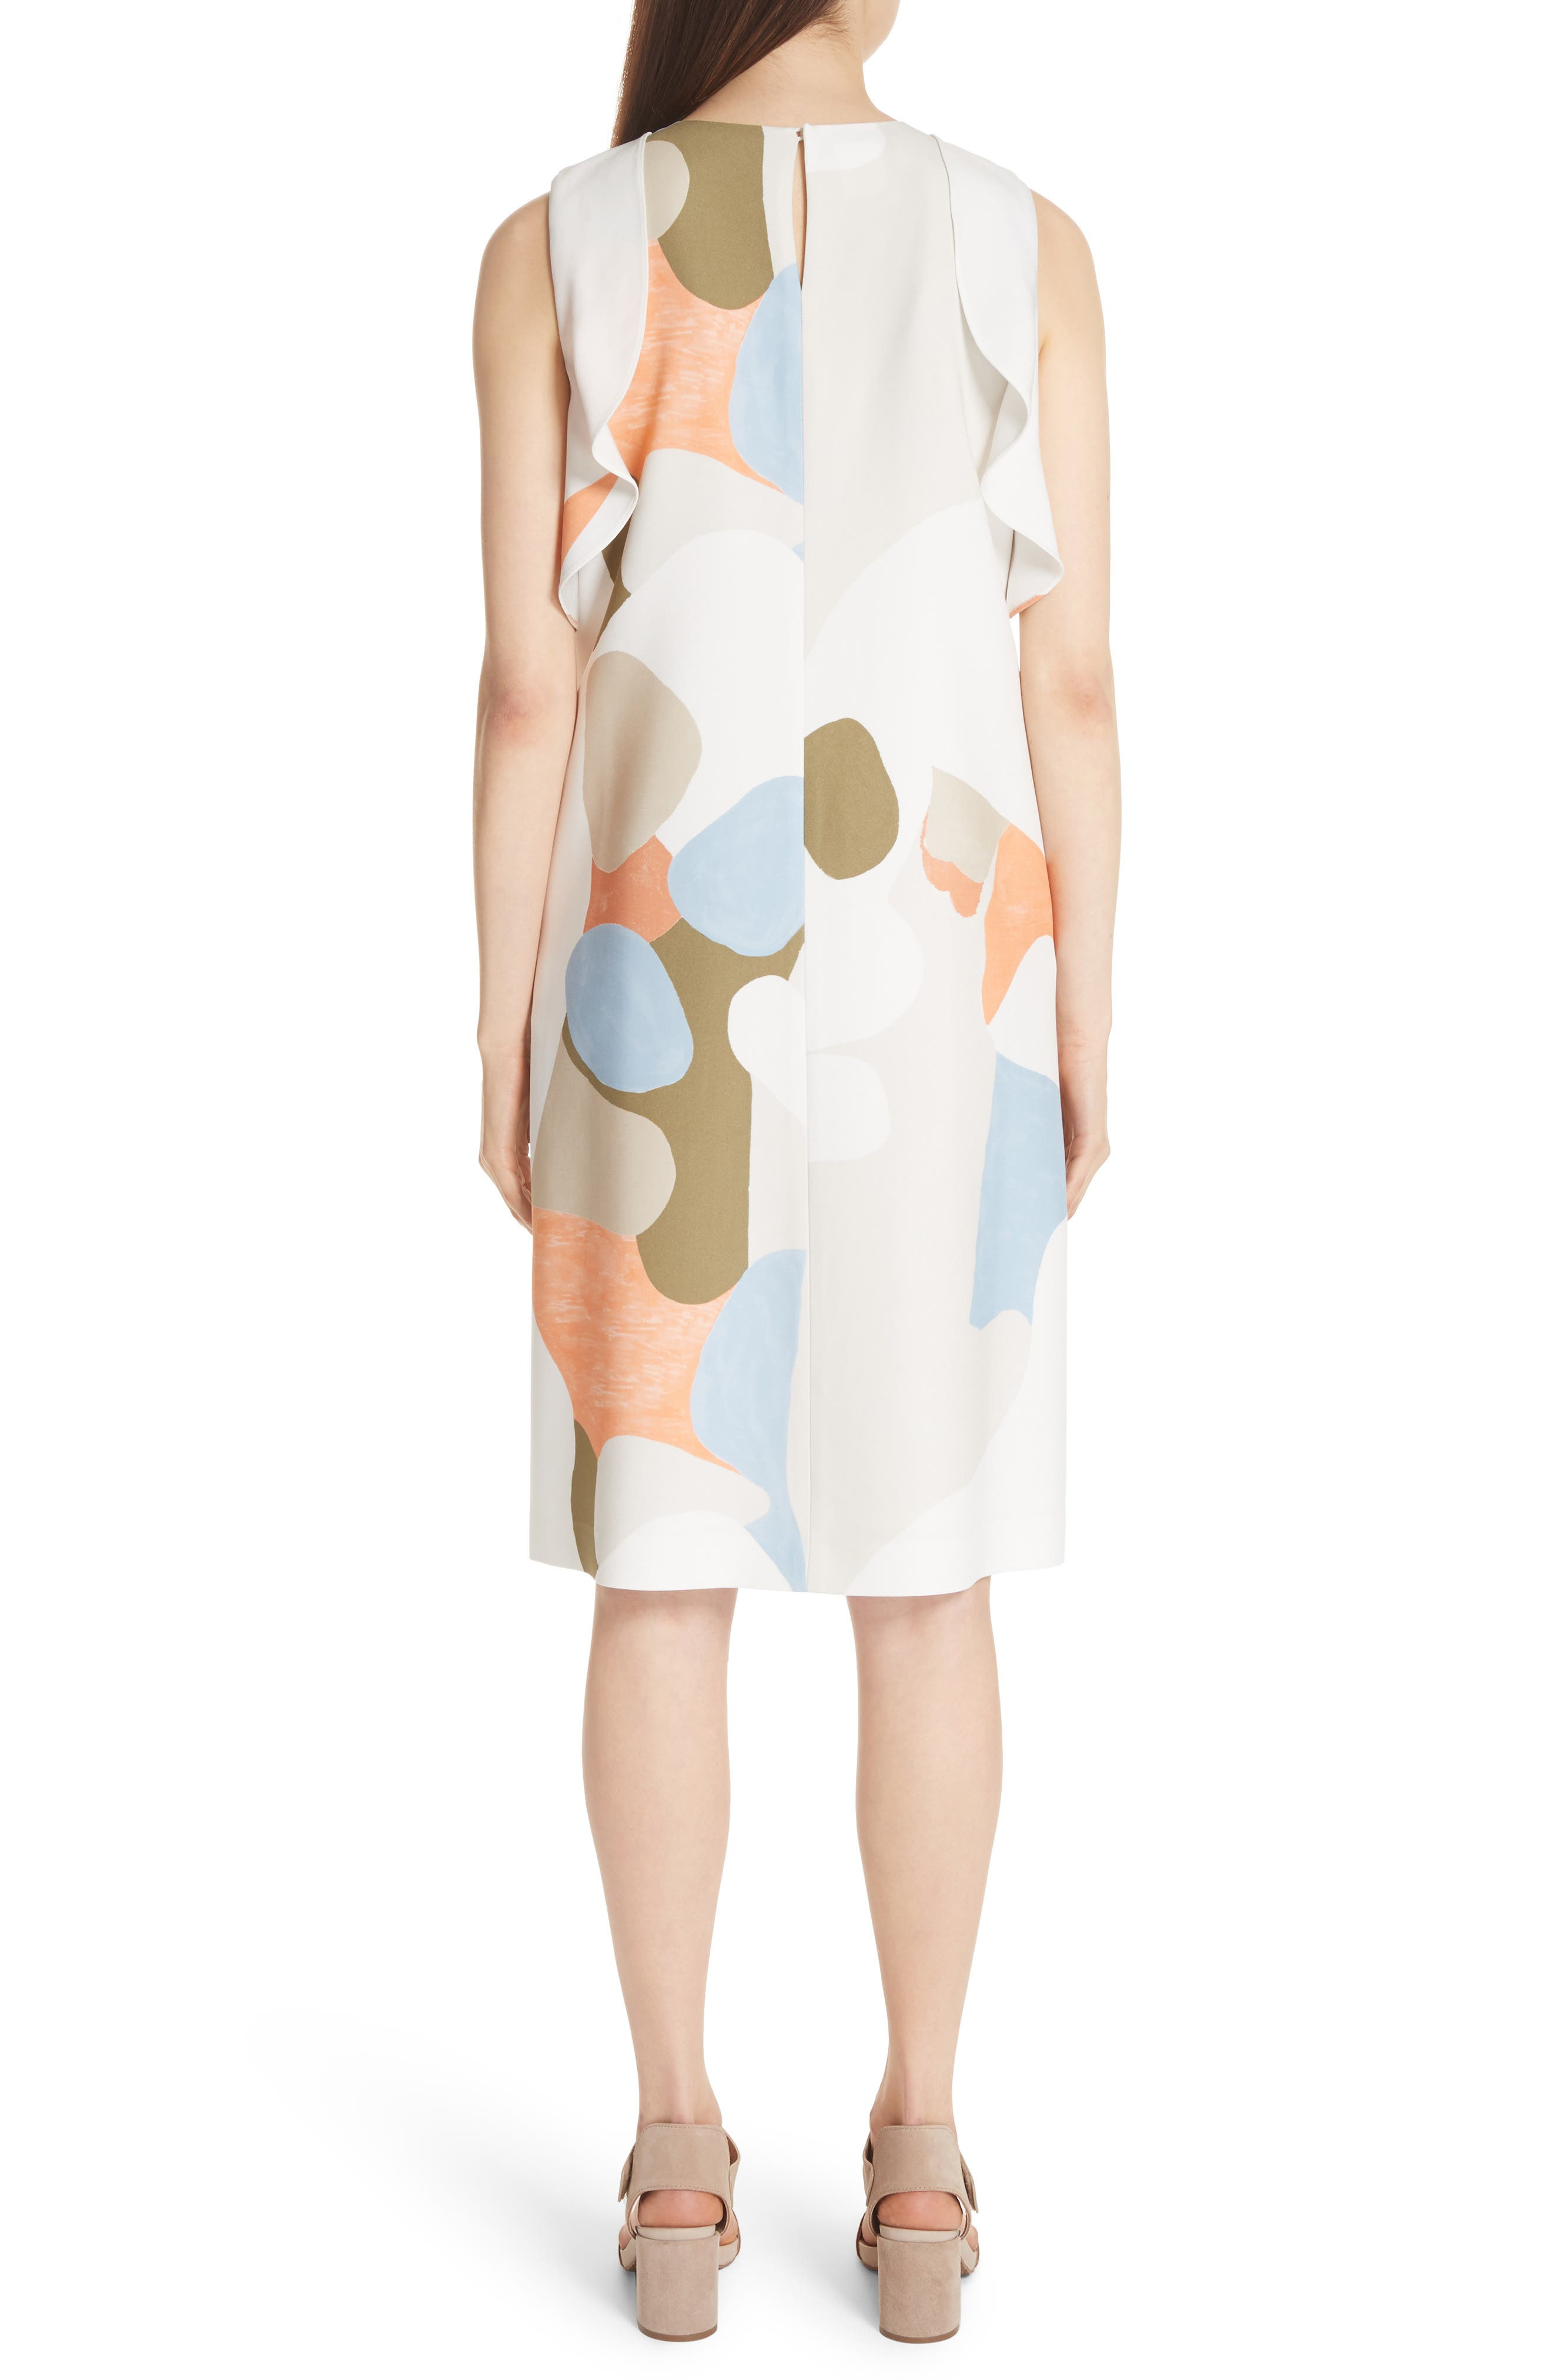 LAFAYETTE 148 NEW YORK,                             Landscape Expression Print Ruffle Dress,                             Alternate thumbnail 2, color,                             909